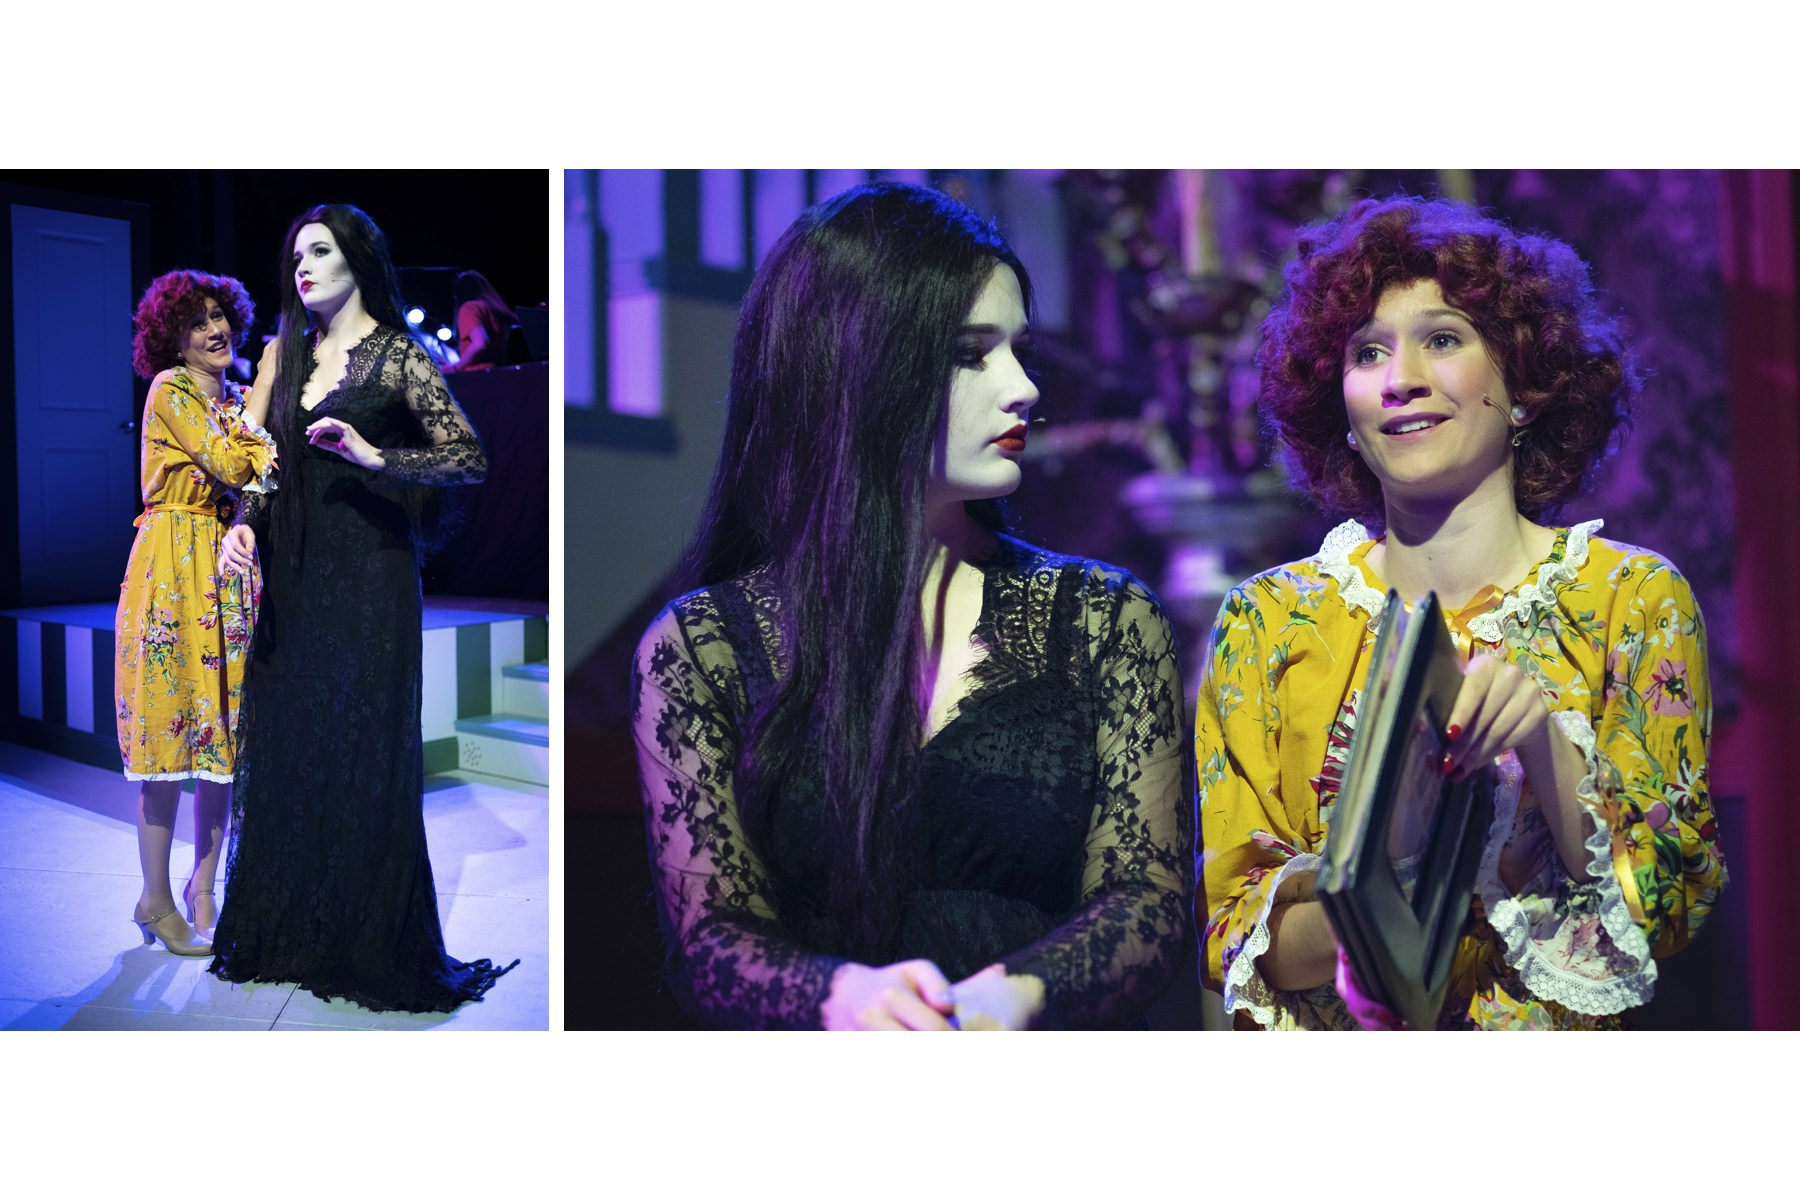 PLC Sydney - The Addams Family 2019 Photography by Christopher Hayles-0015.jpg